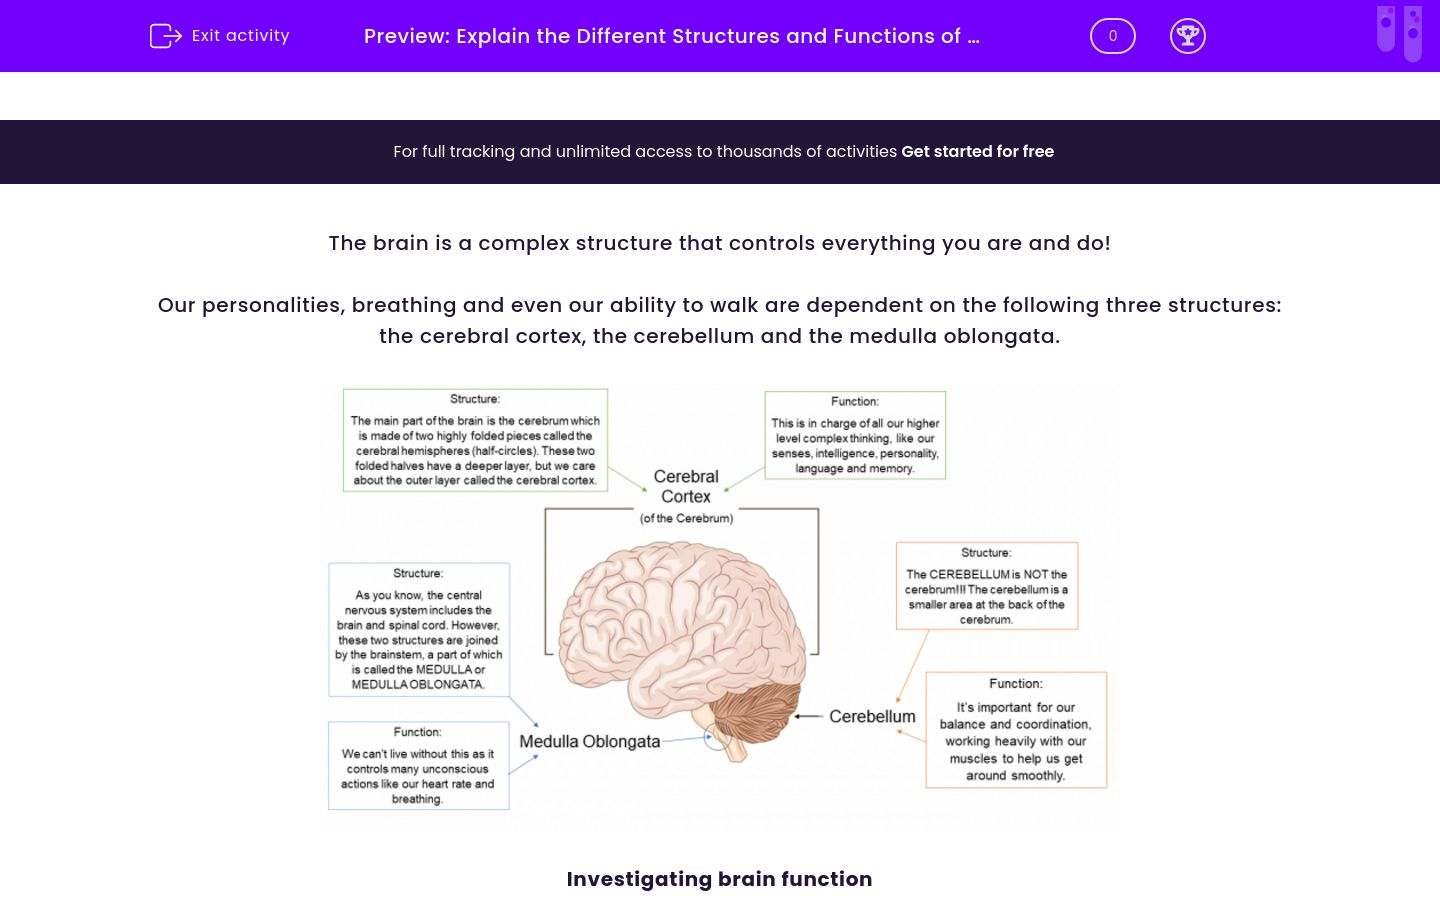 'Explain the Different Structures and Functions of the Brain' worksheet